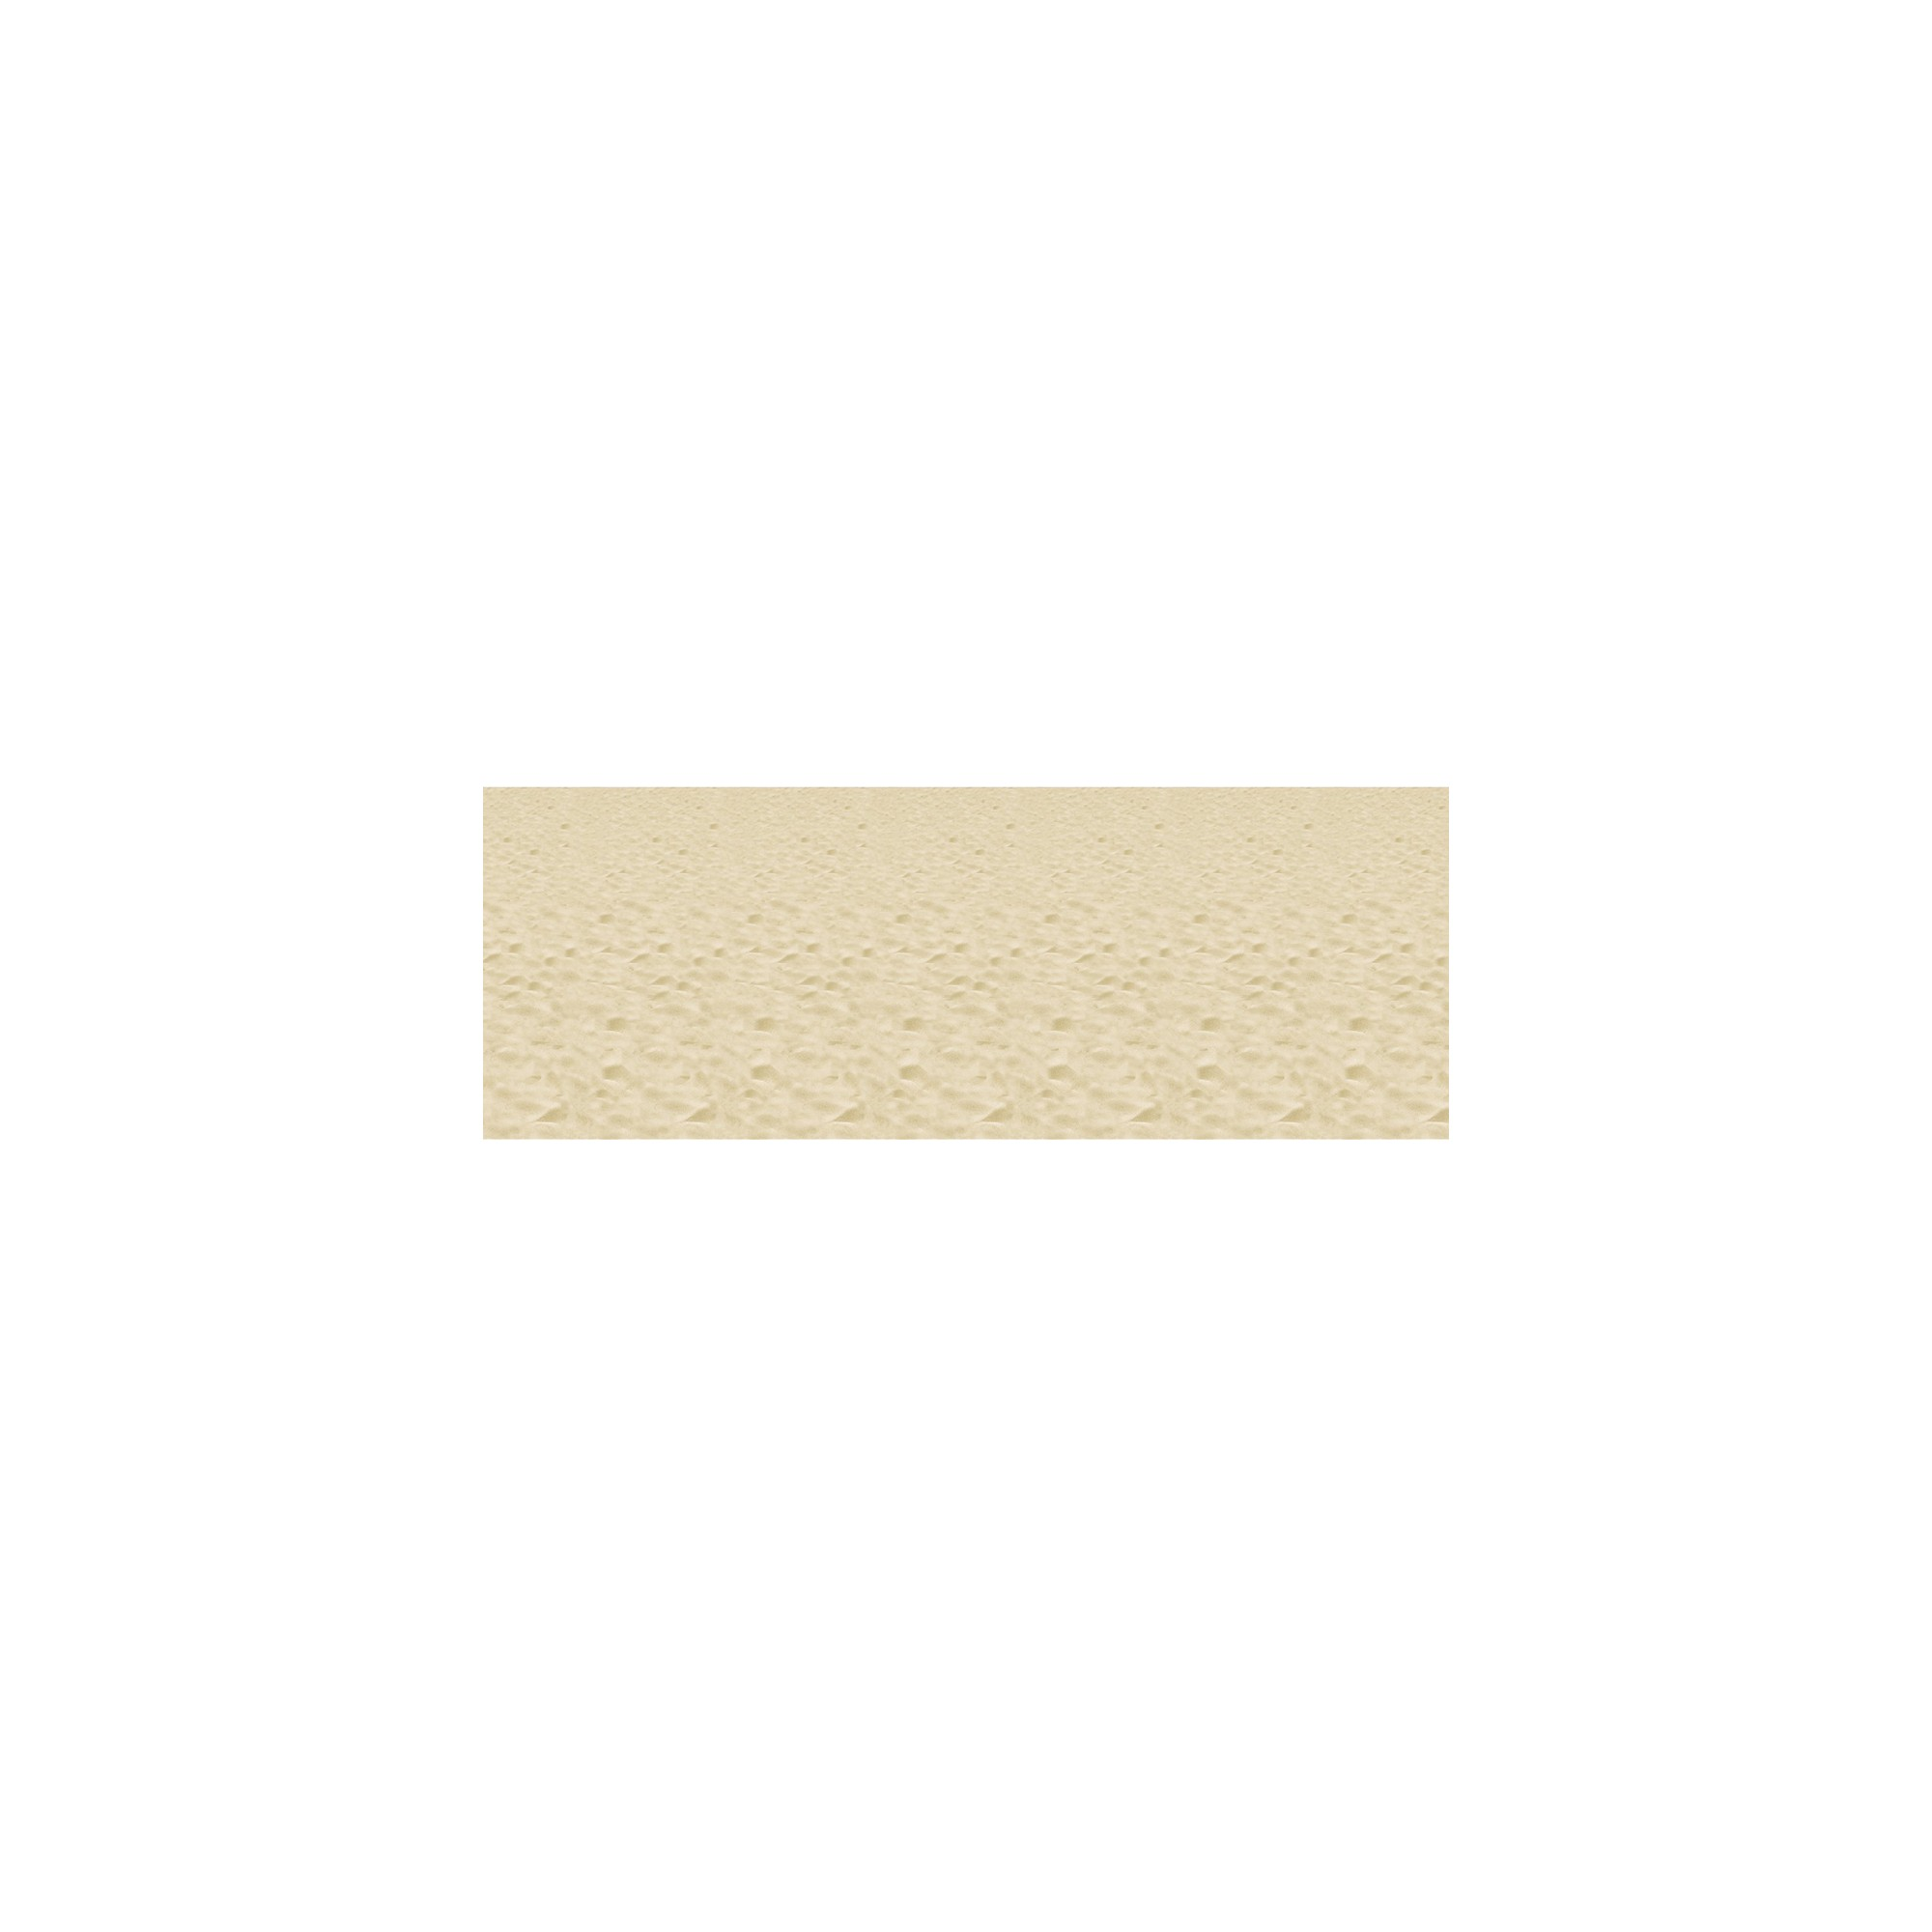 Sandy Beach Party Backdrop, Brown